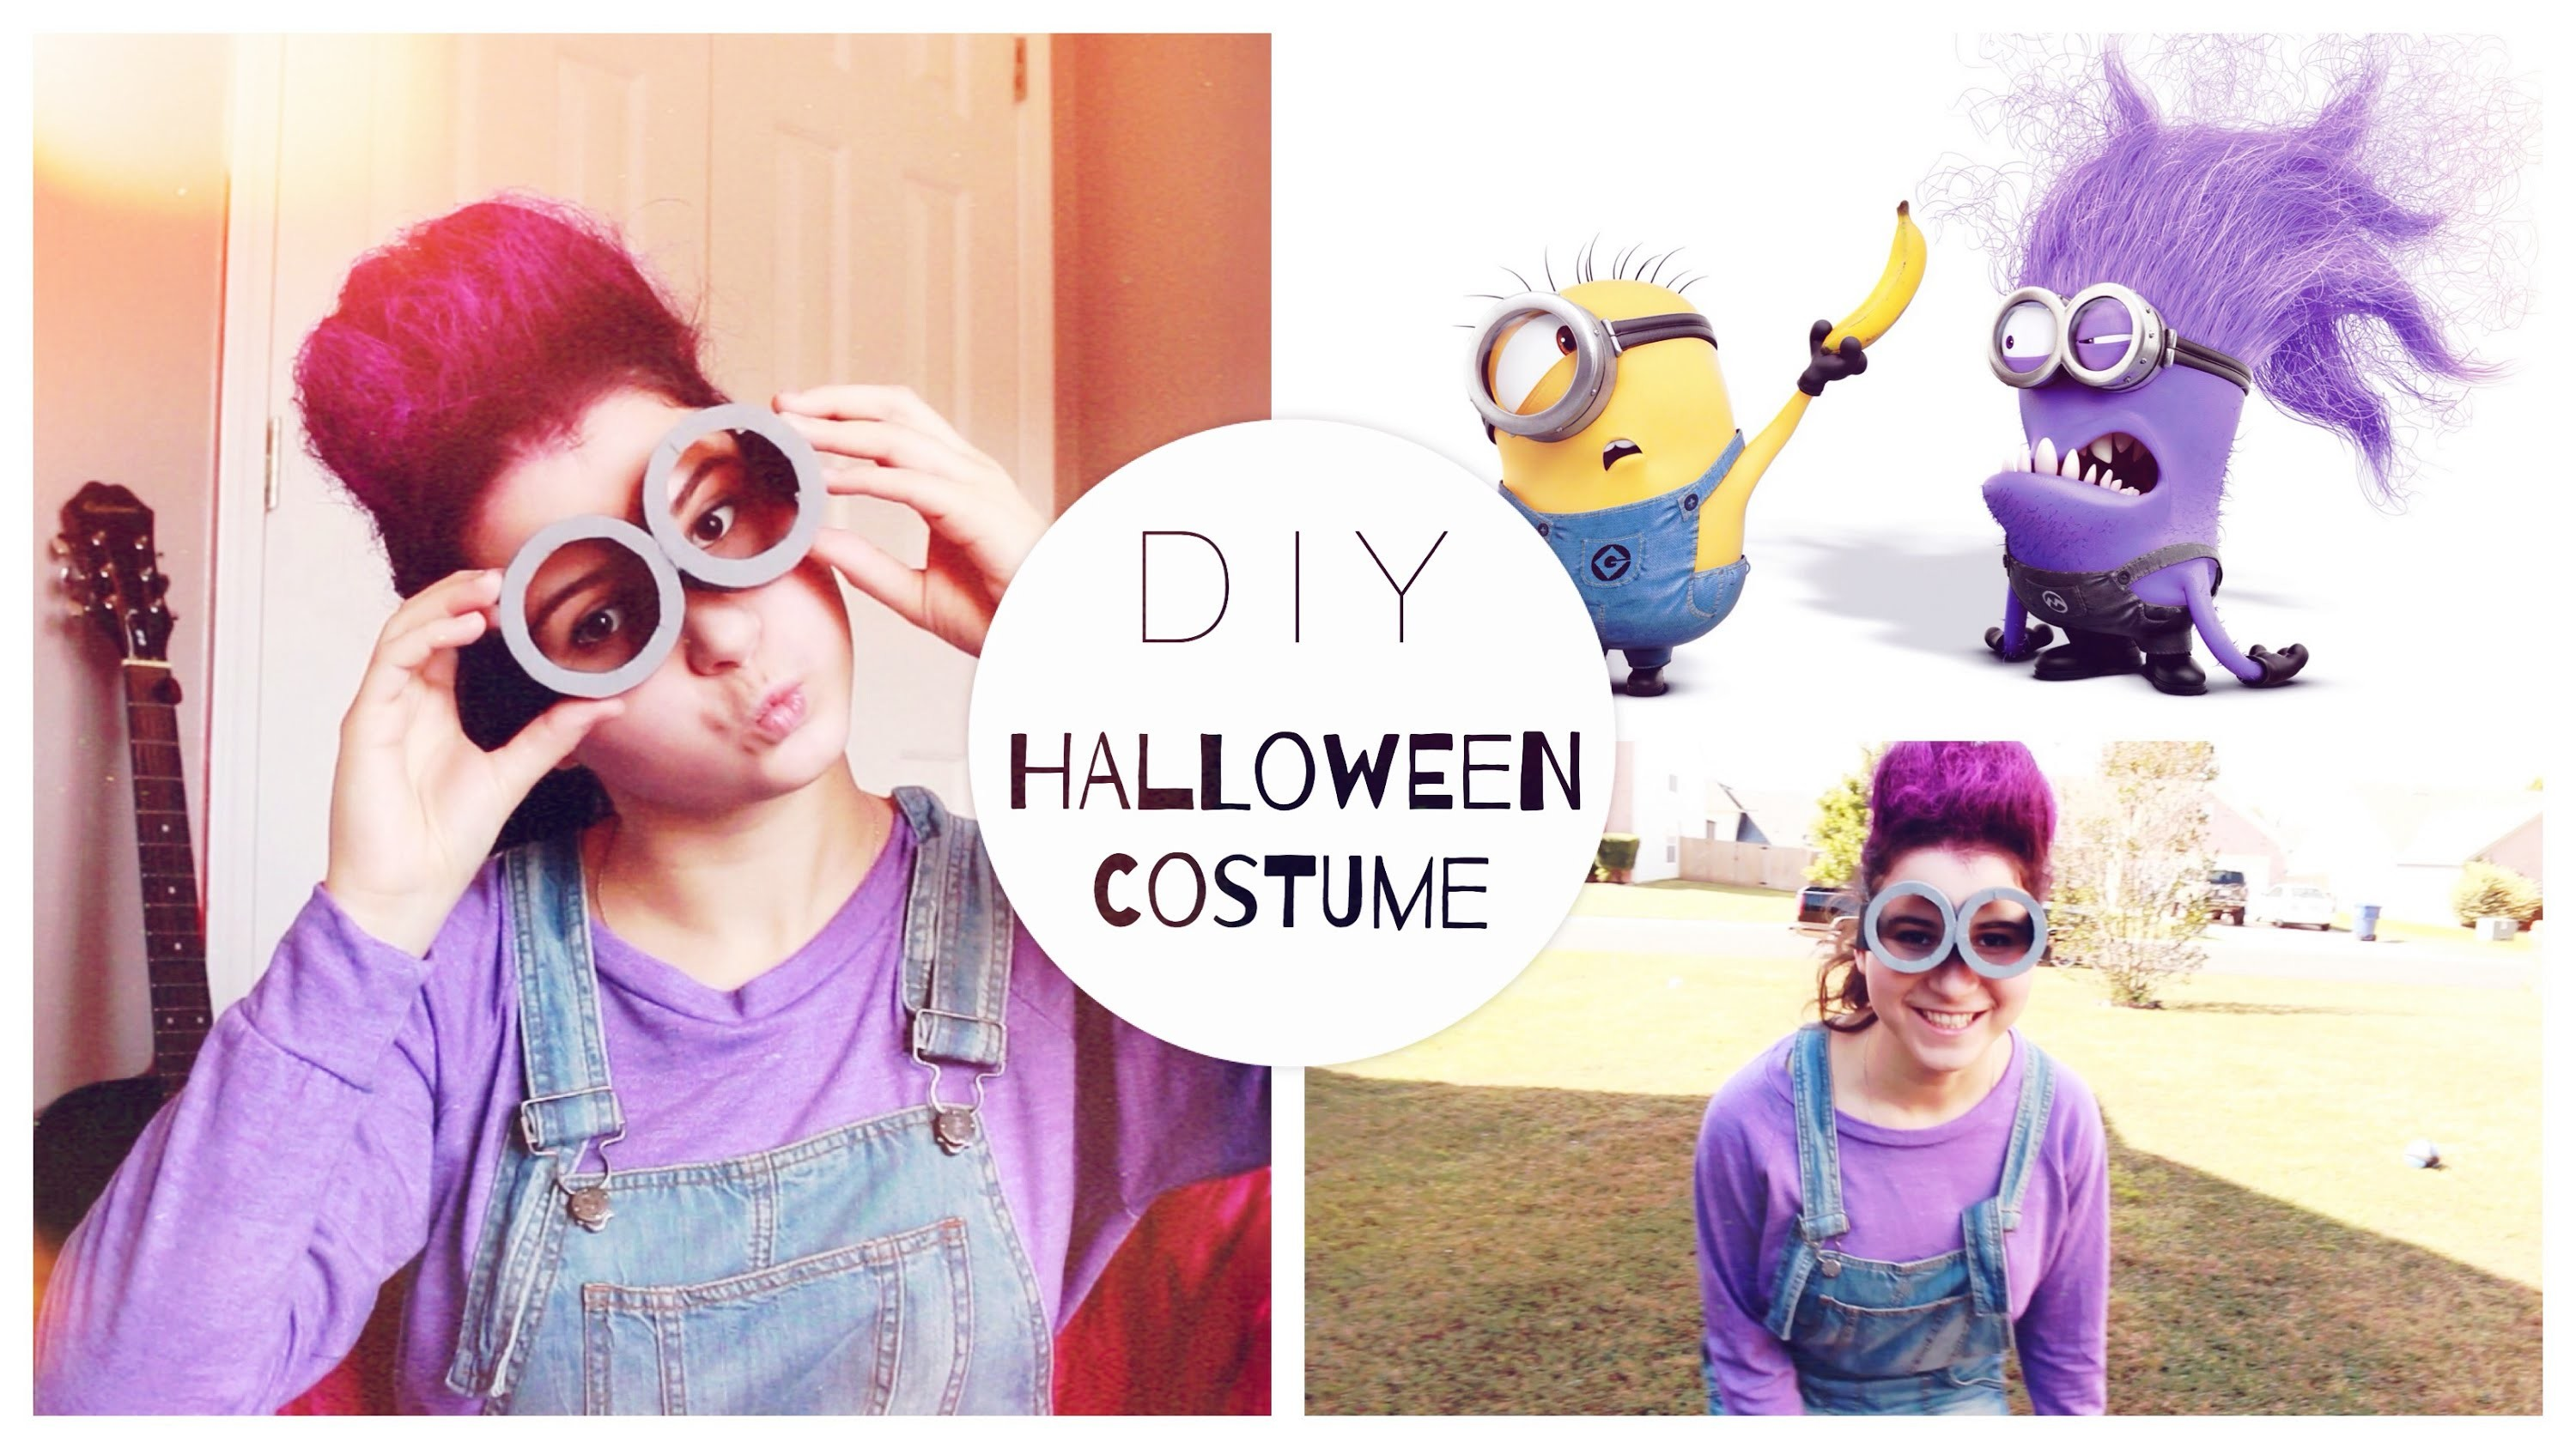 DIY: костюм на Хэллоуин-Злой Миньон + прическа | DIY PURPLE MINION HALLOWEEN COSTUME